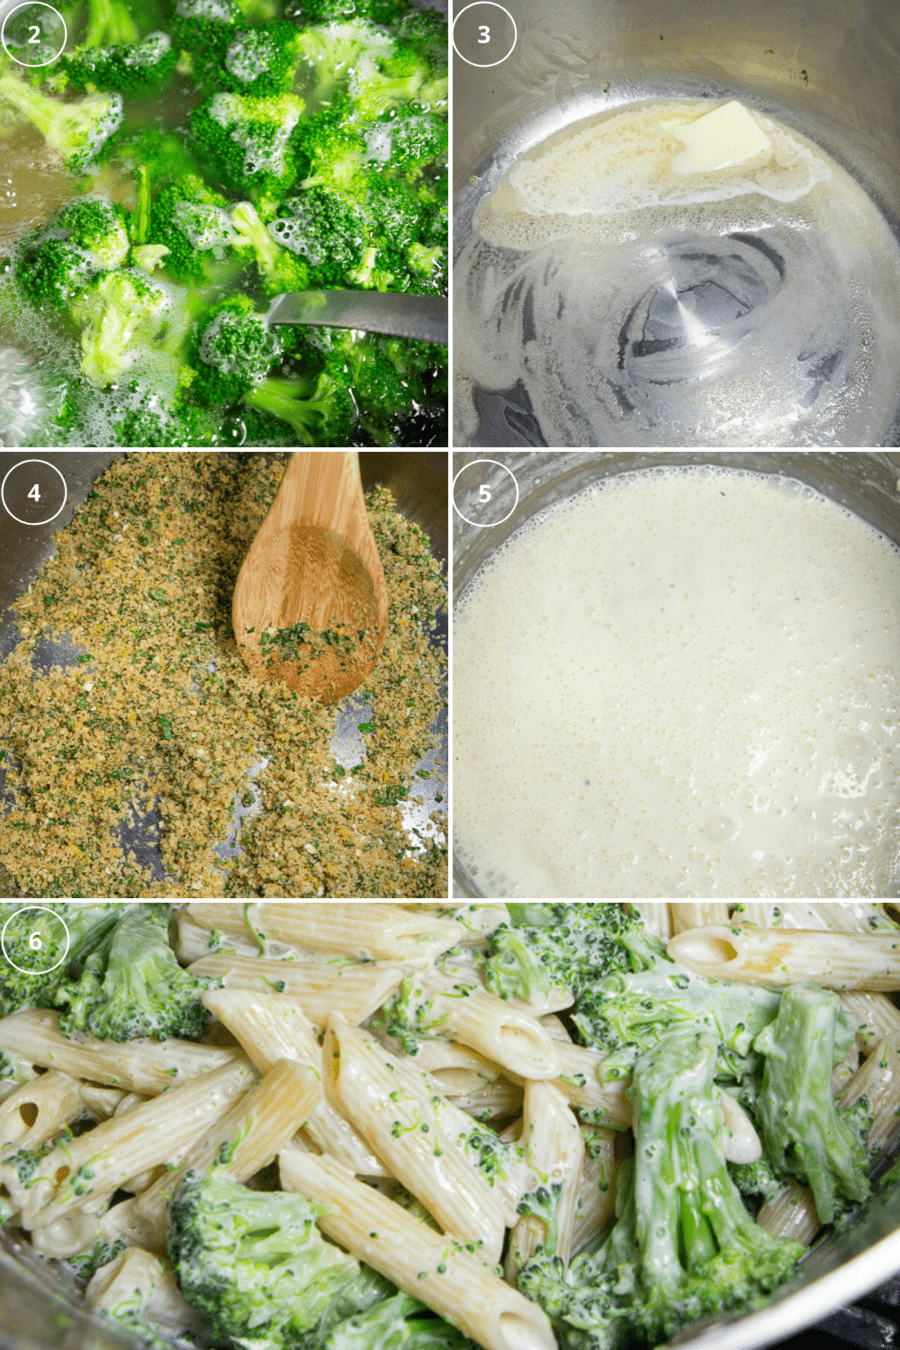 pasta and broccoli in boiling water, breadcrumbs in butter in a pan, a cream sauce in a pan, and a pot of creamy pasta with broccoli